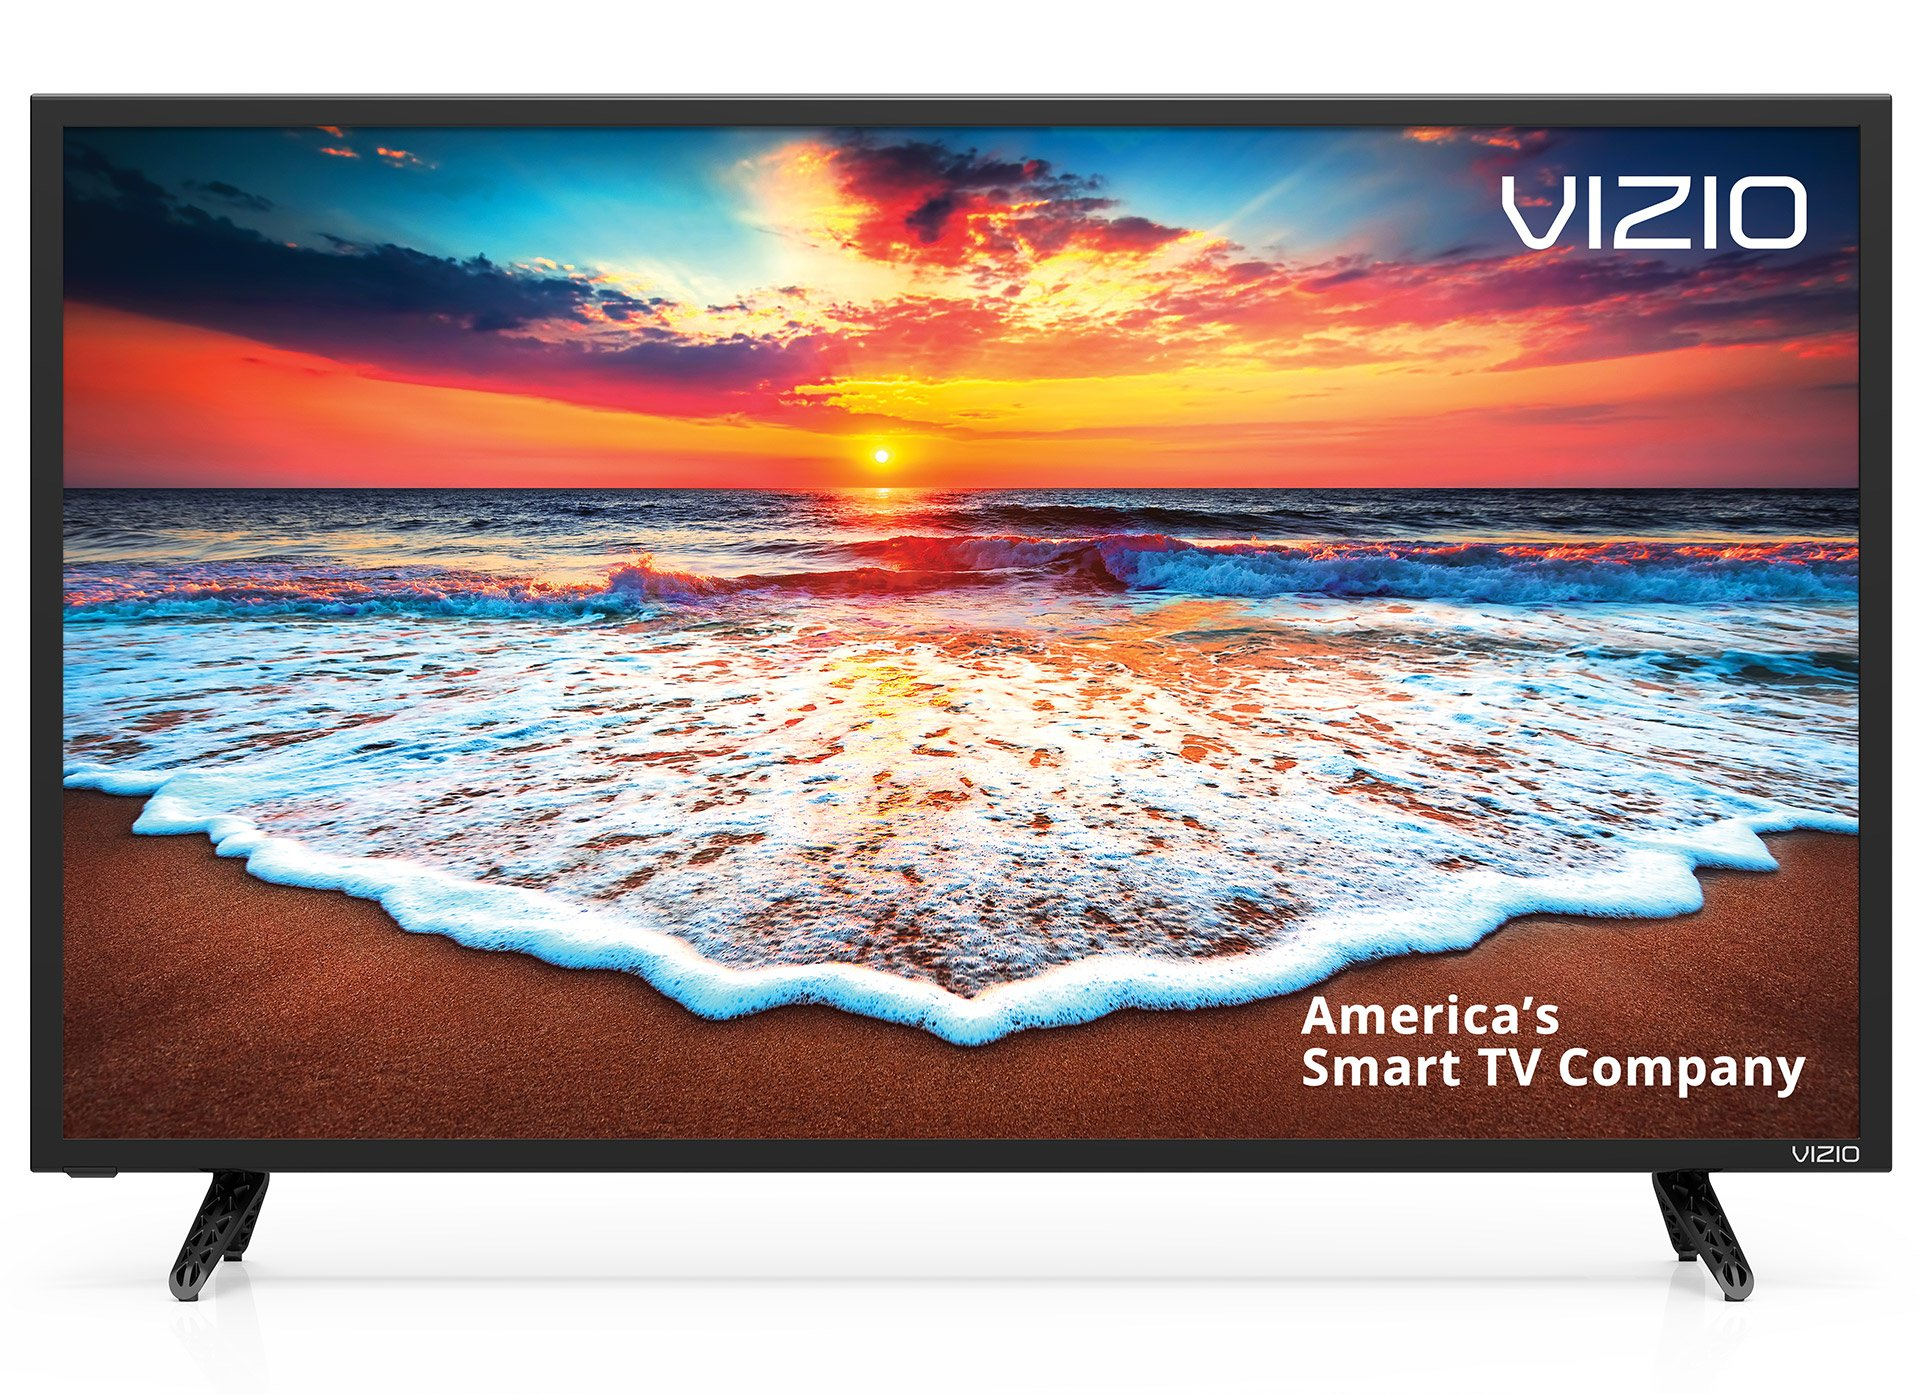 Vizio 32-Inch Full HD LED Smart TV Almost Free With Amex Card